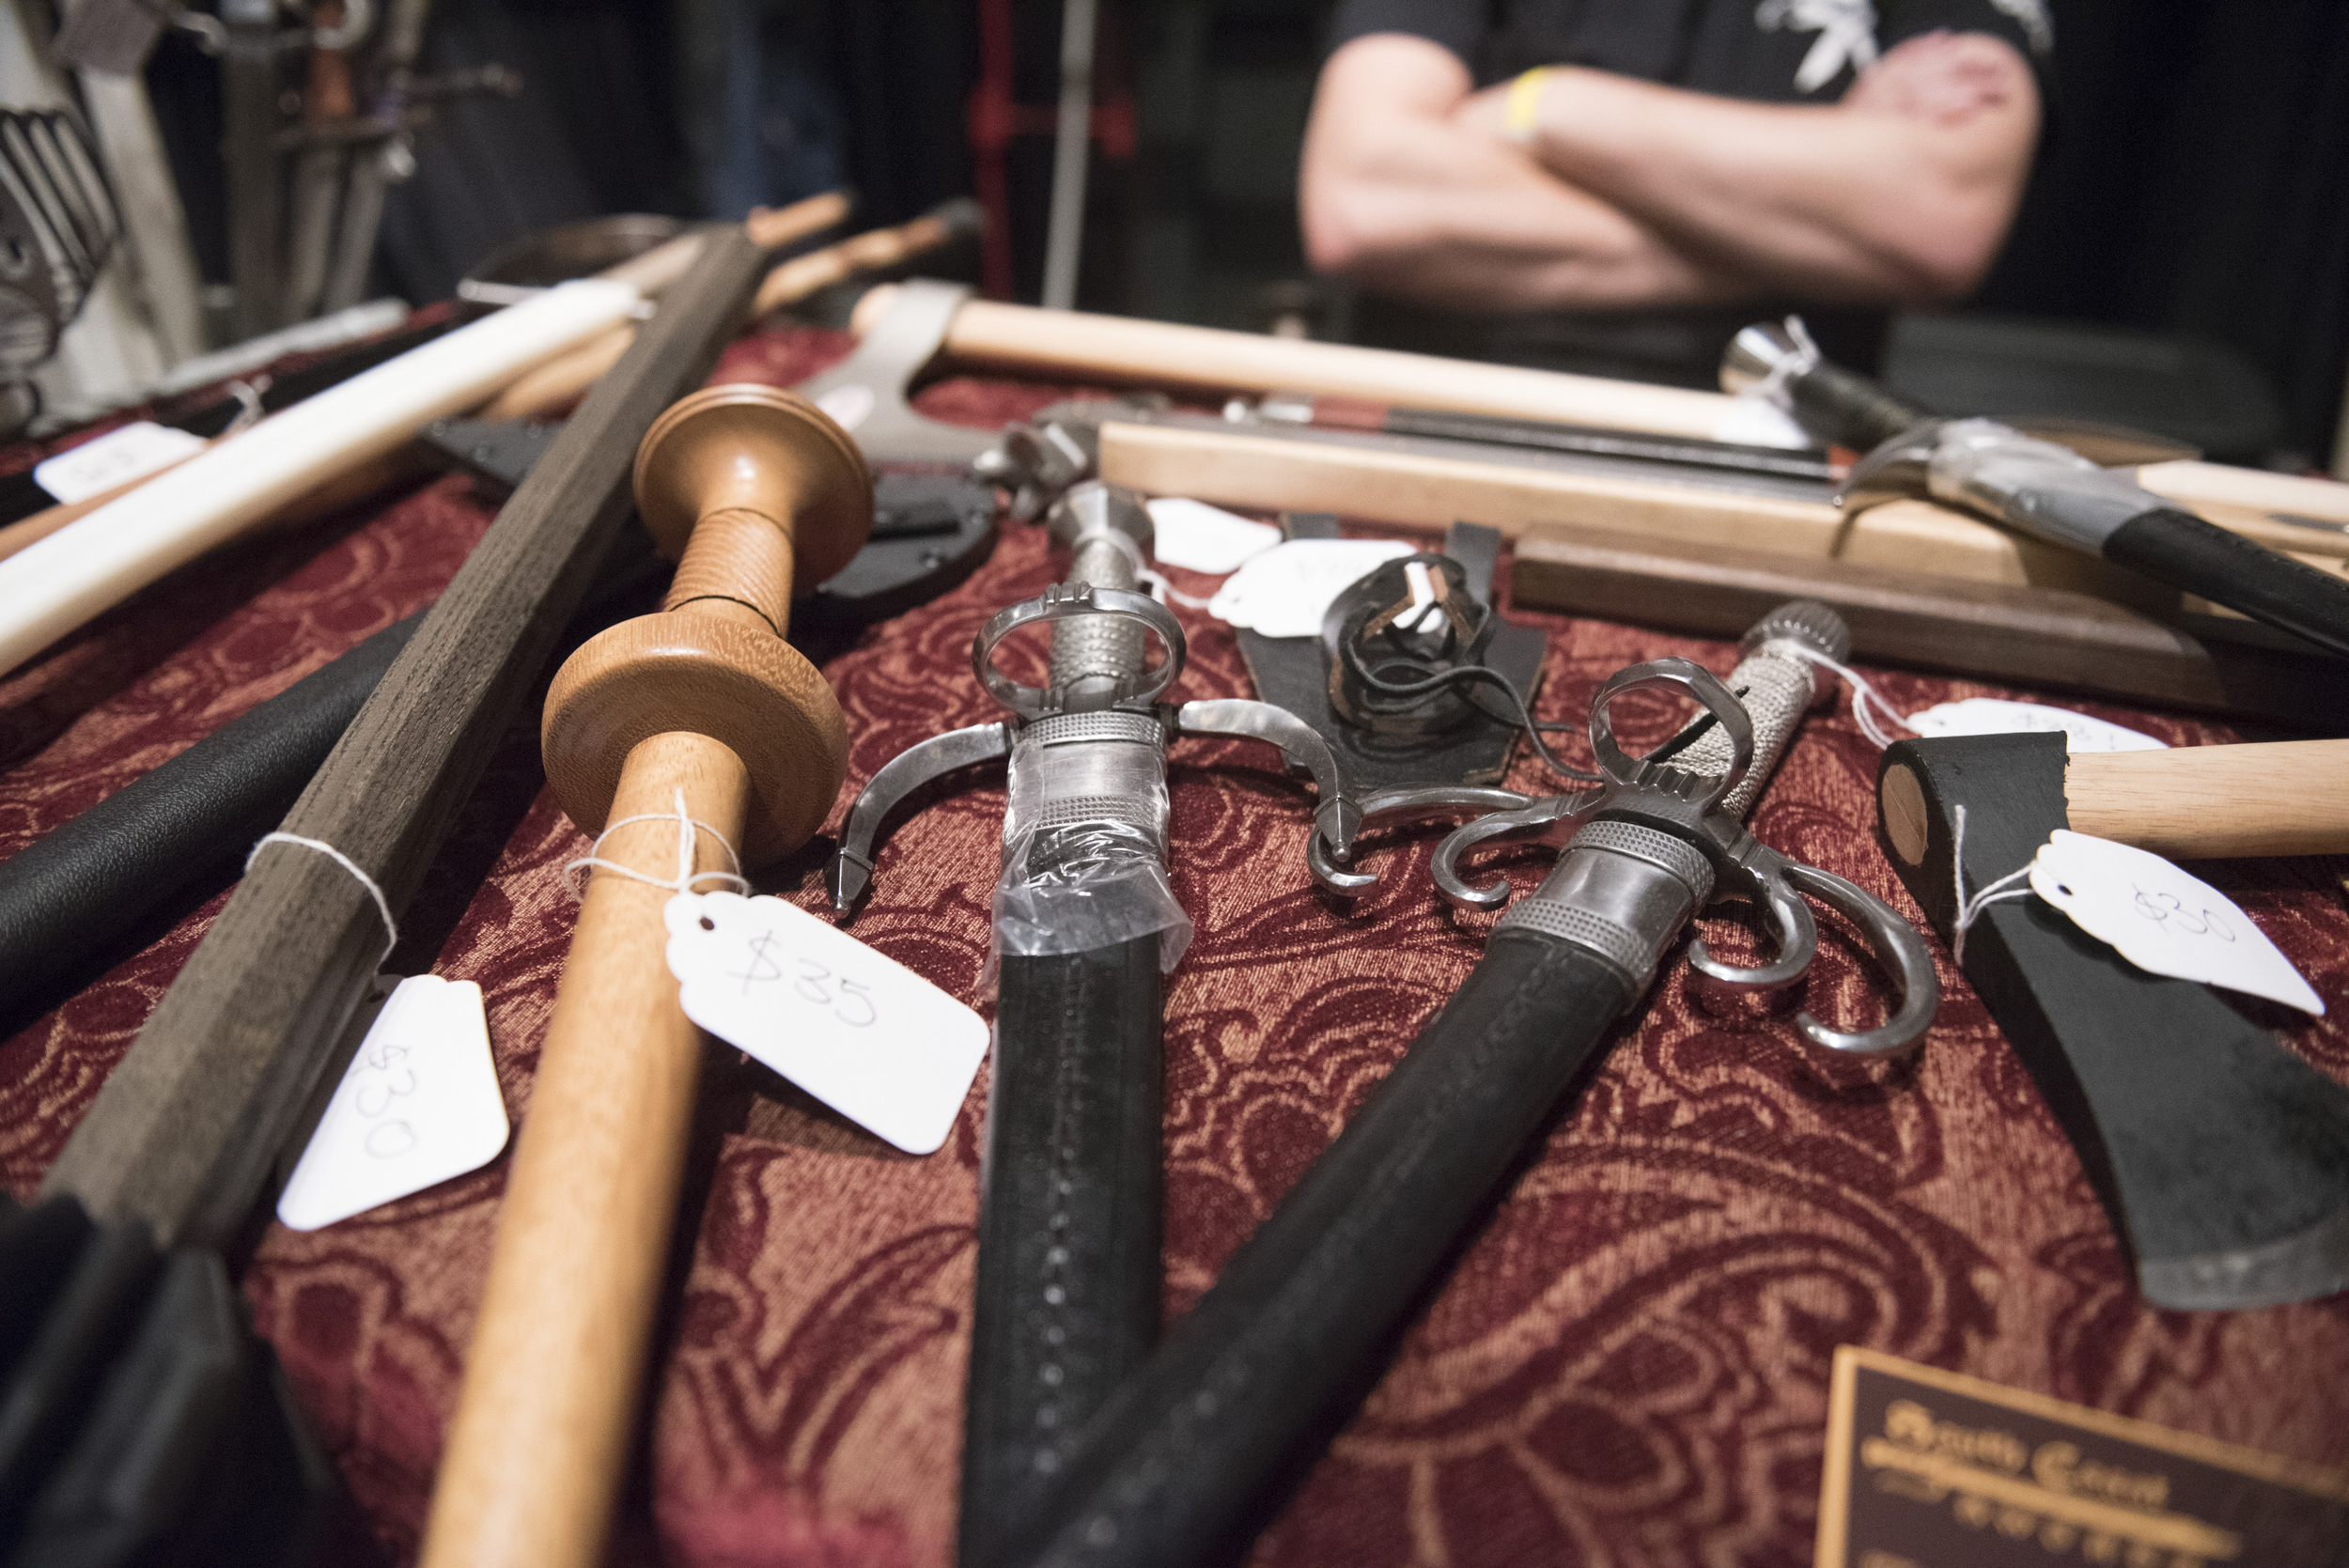 A vendors displays their goods on the conference floor at CombatCon at The Palms Resort and Casino in Las Vegas, Saturday, June 27, 2015.(Jason Ogulnik/Las Vegas Review-Journal)